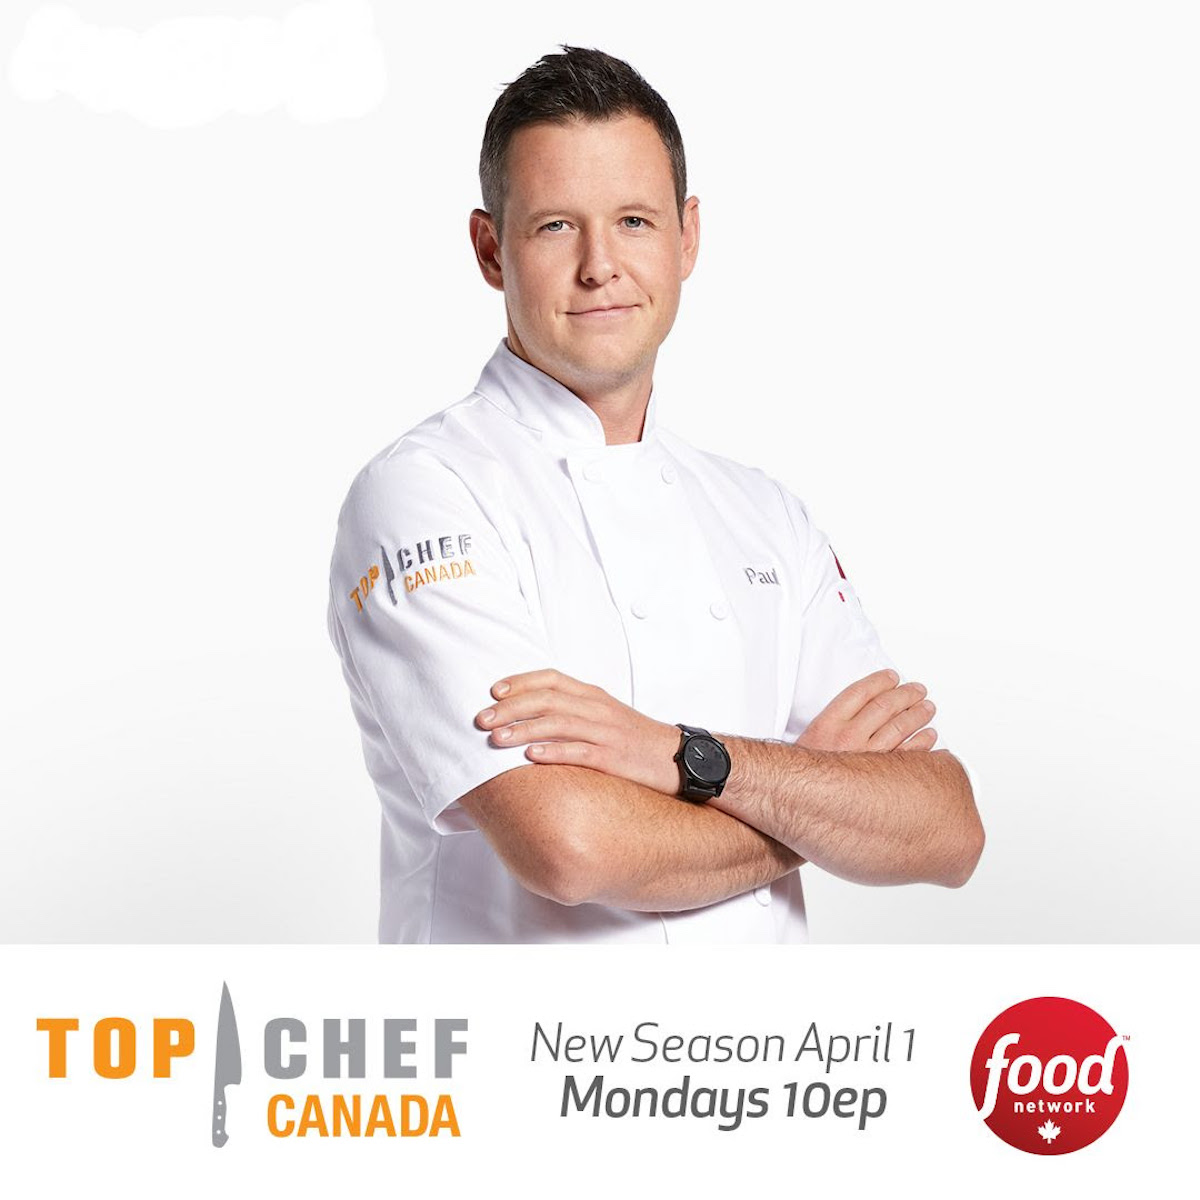 Chef Paul Moran set to compete on Food Network's Top Chef Canada